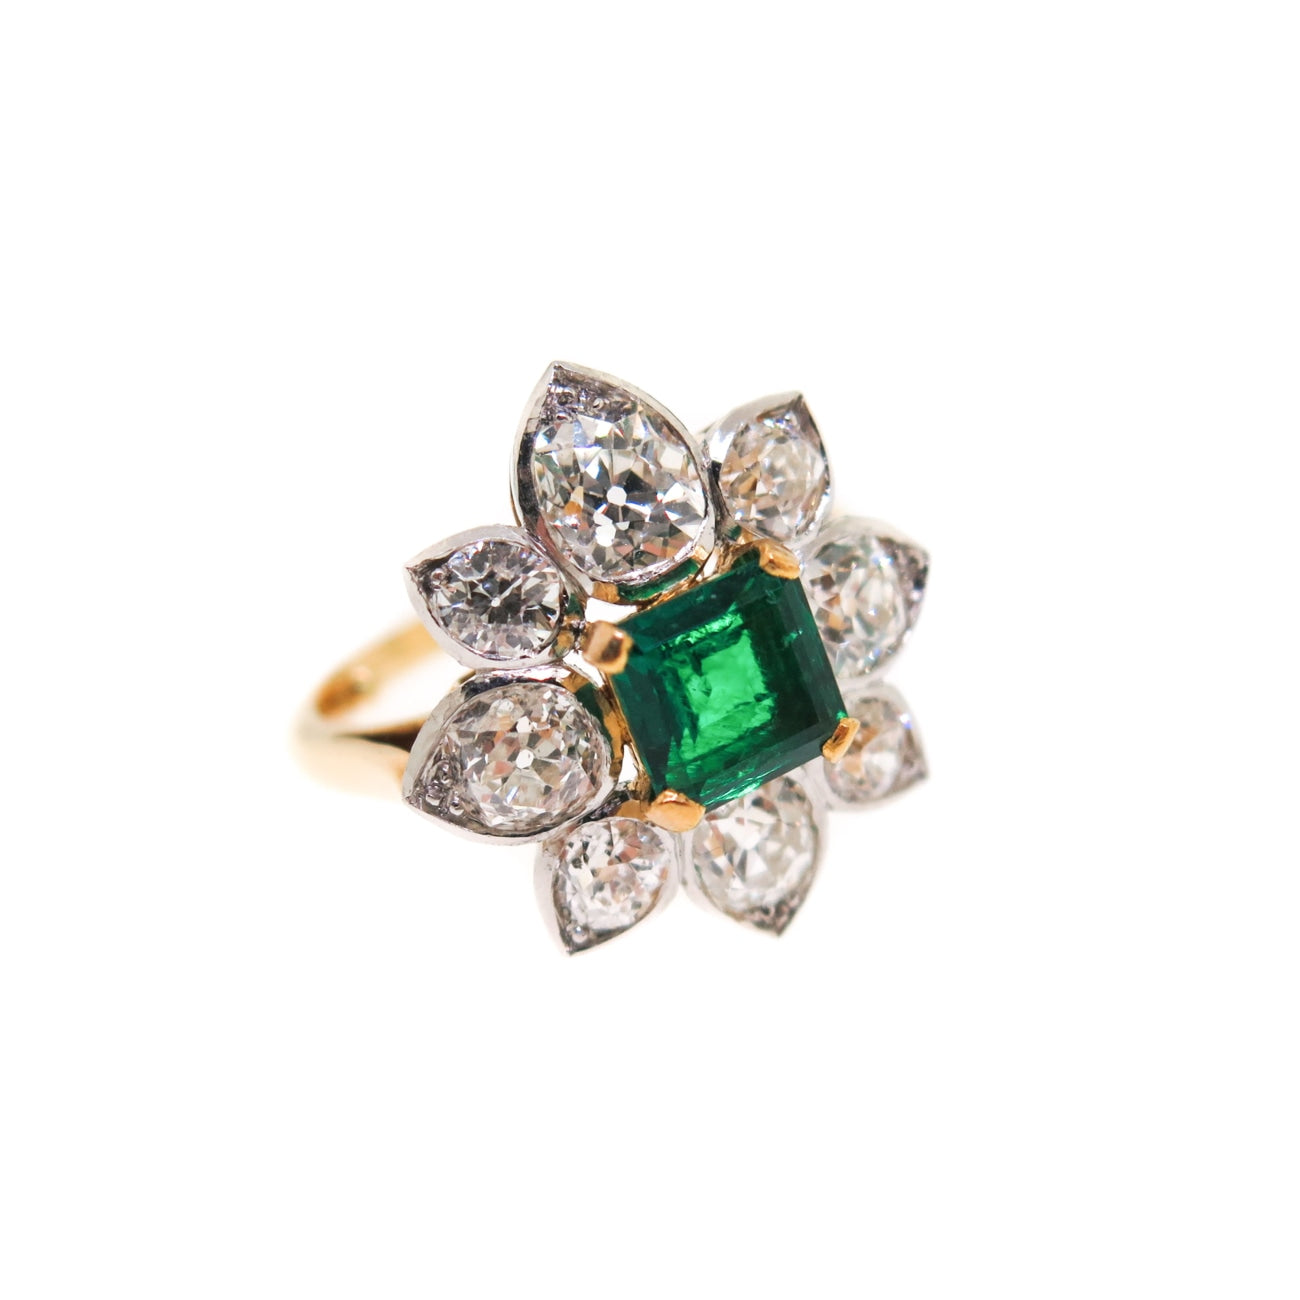 Estate Jewelry Estate Jewelry - Emerald & Diamond Flower Ring | Manfredi Jewels